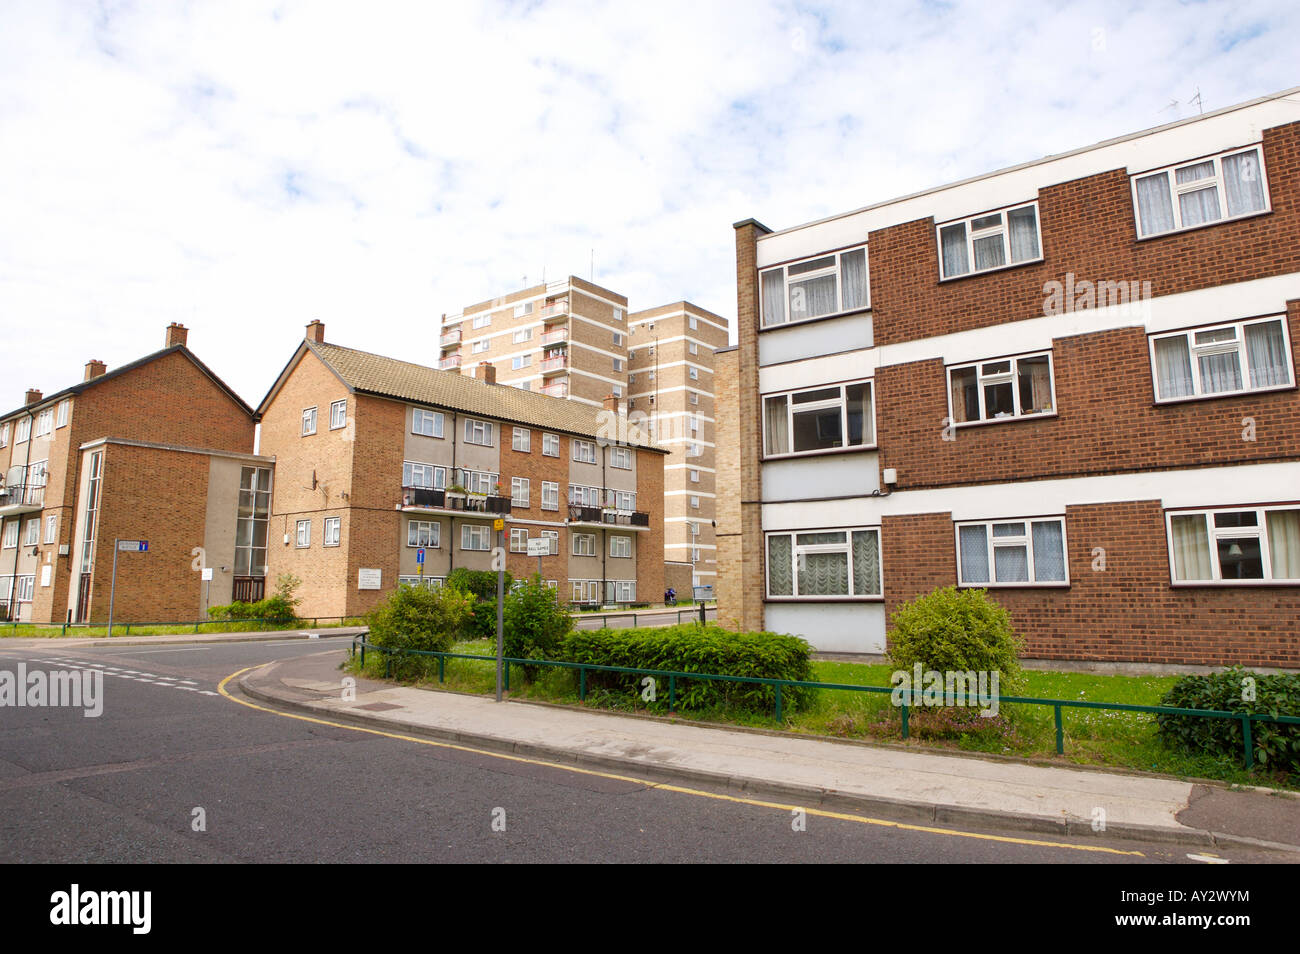 Council estate with high rise buildings and flats - Stock Image